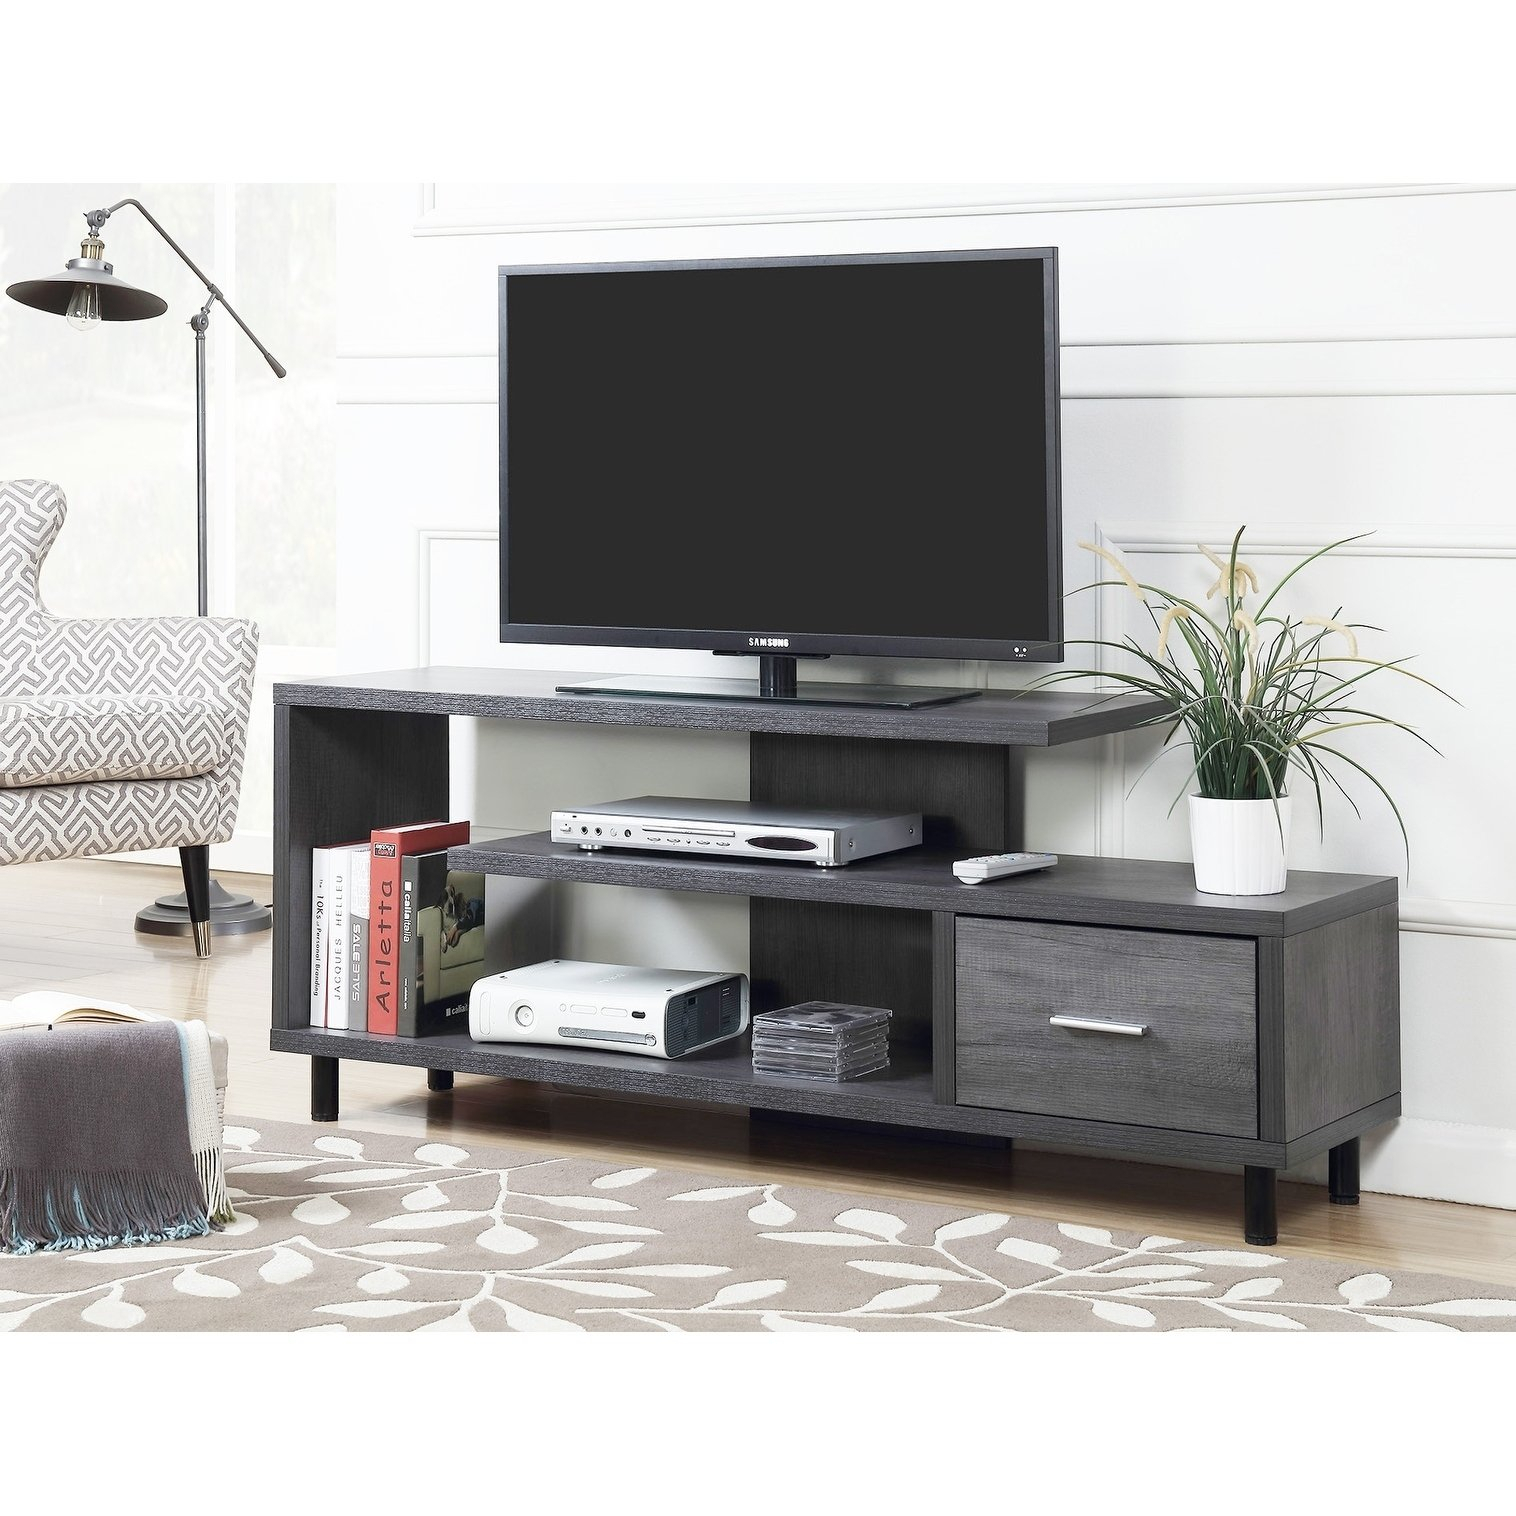 Buy Grey, 42 - 60 Inches Tv Stands & Entertainment Centers Online At regarding Canyon 54 Inch Tv Stands (Image 3 of 30)